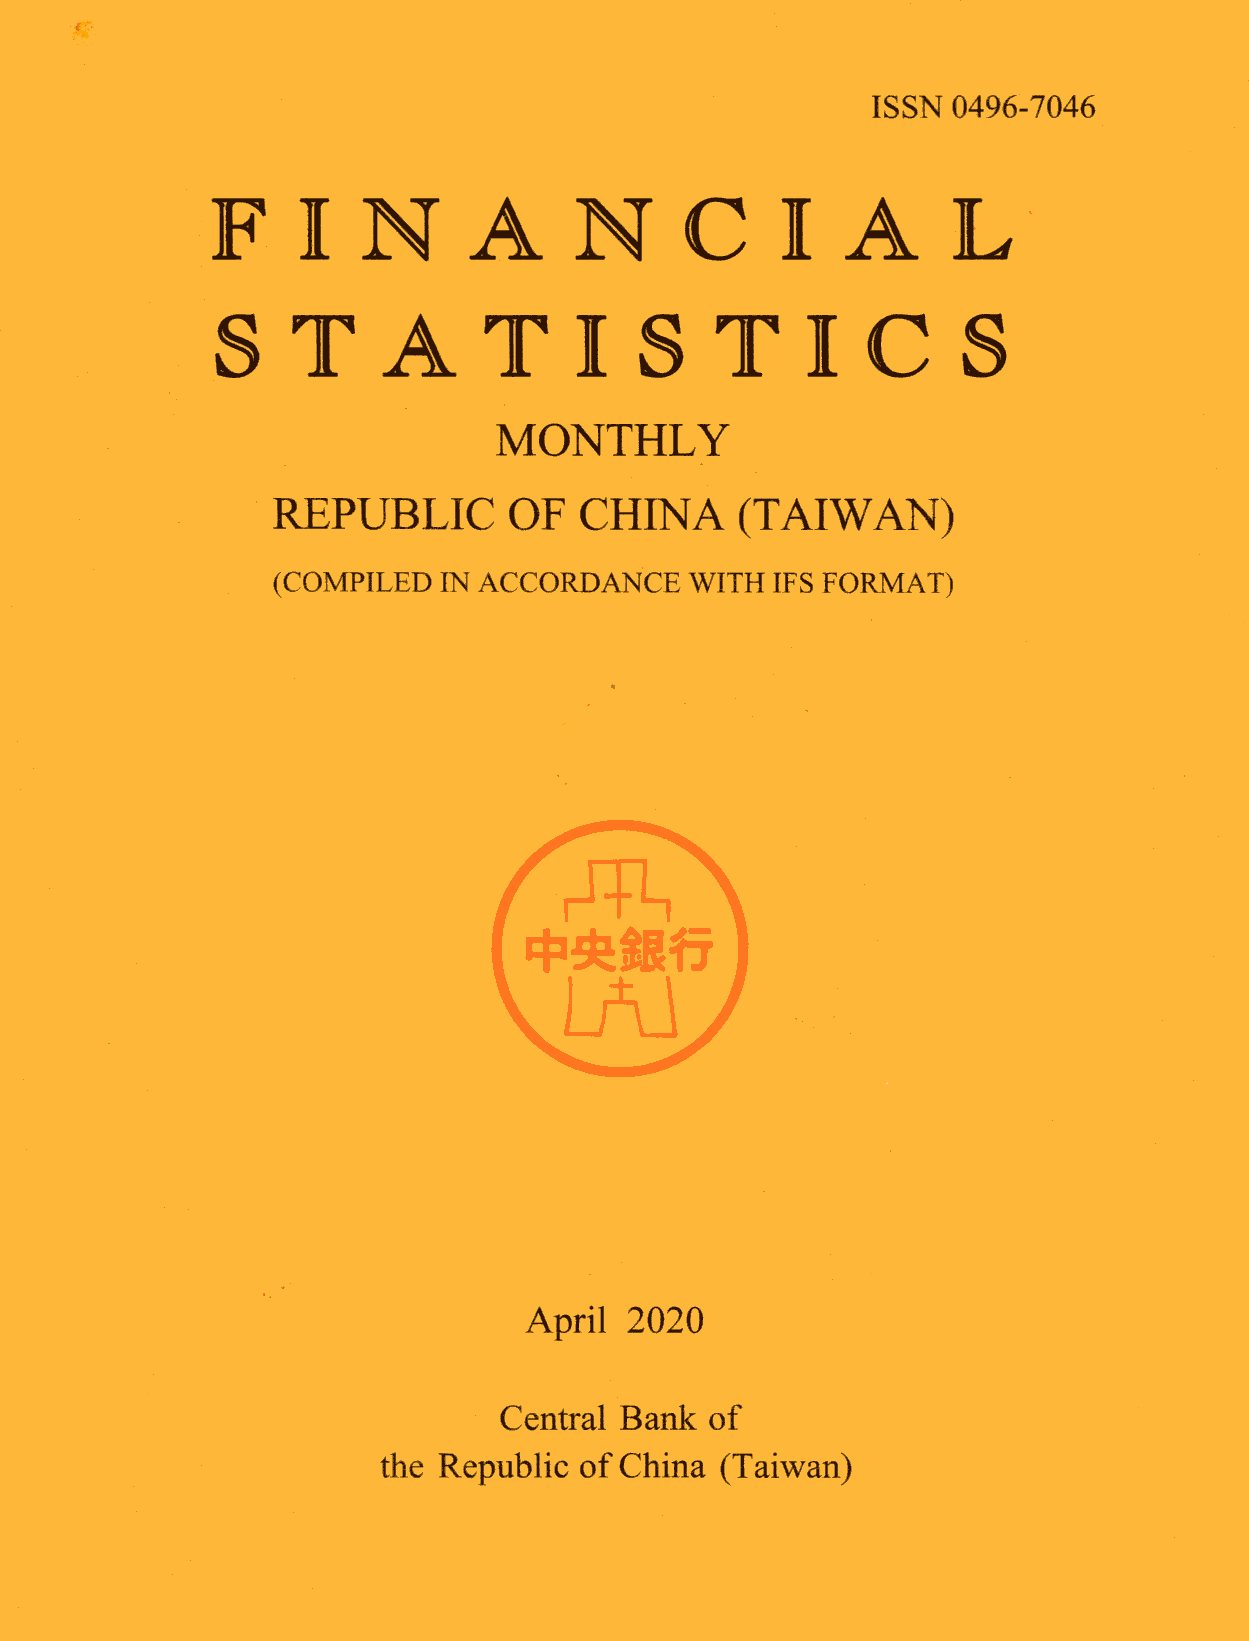 Financial Statistics Monthly Republic of China (Taiwan) 2020/04(109/04)